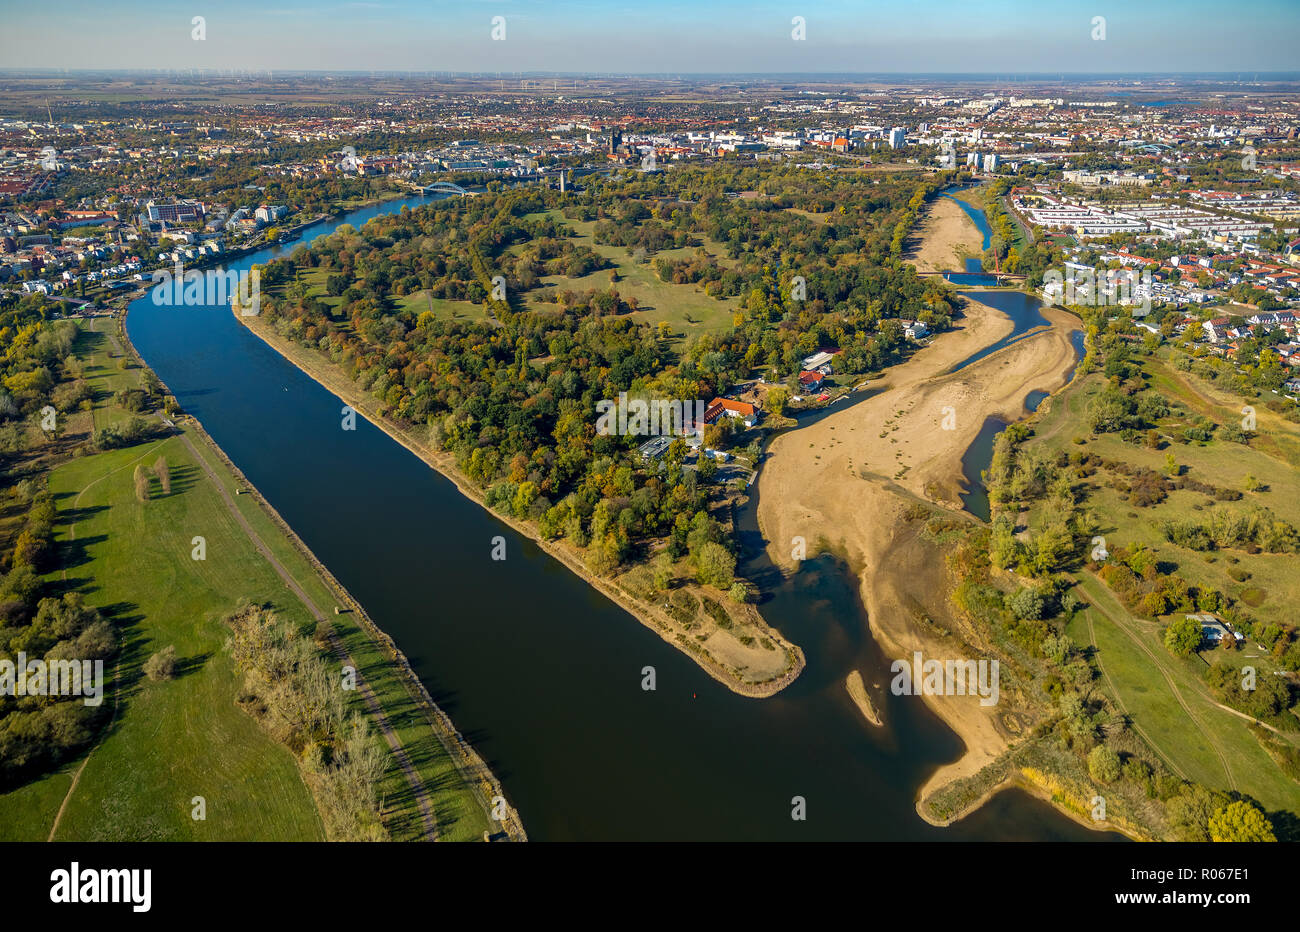 Aerial photograph, Elbe, Old Elbe, river, dry tributary, low water, drought, lack of water, Buckau, Magdeburg, Saxony-Anhalt, Germany, DEU, Europe, ae - Stock Image